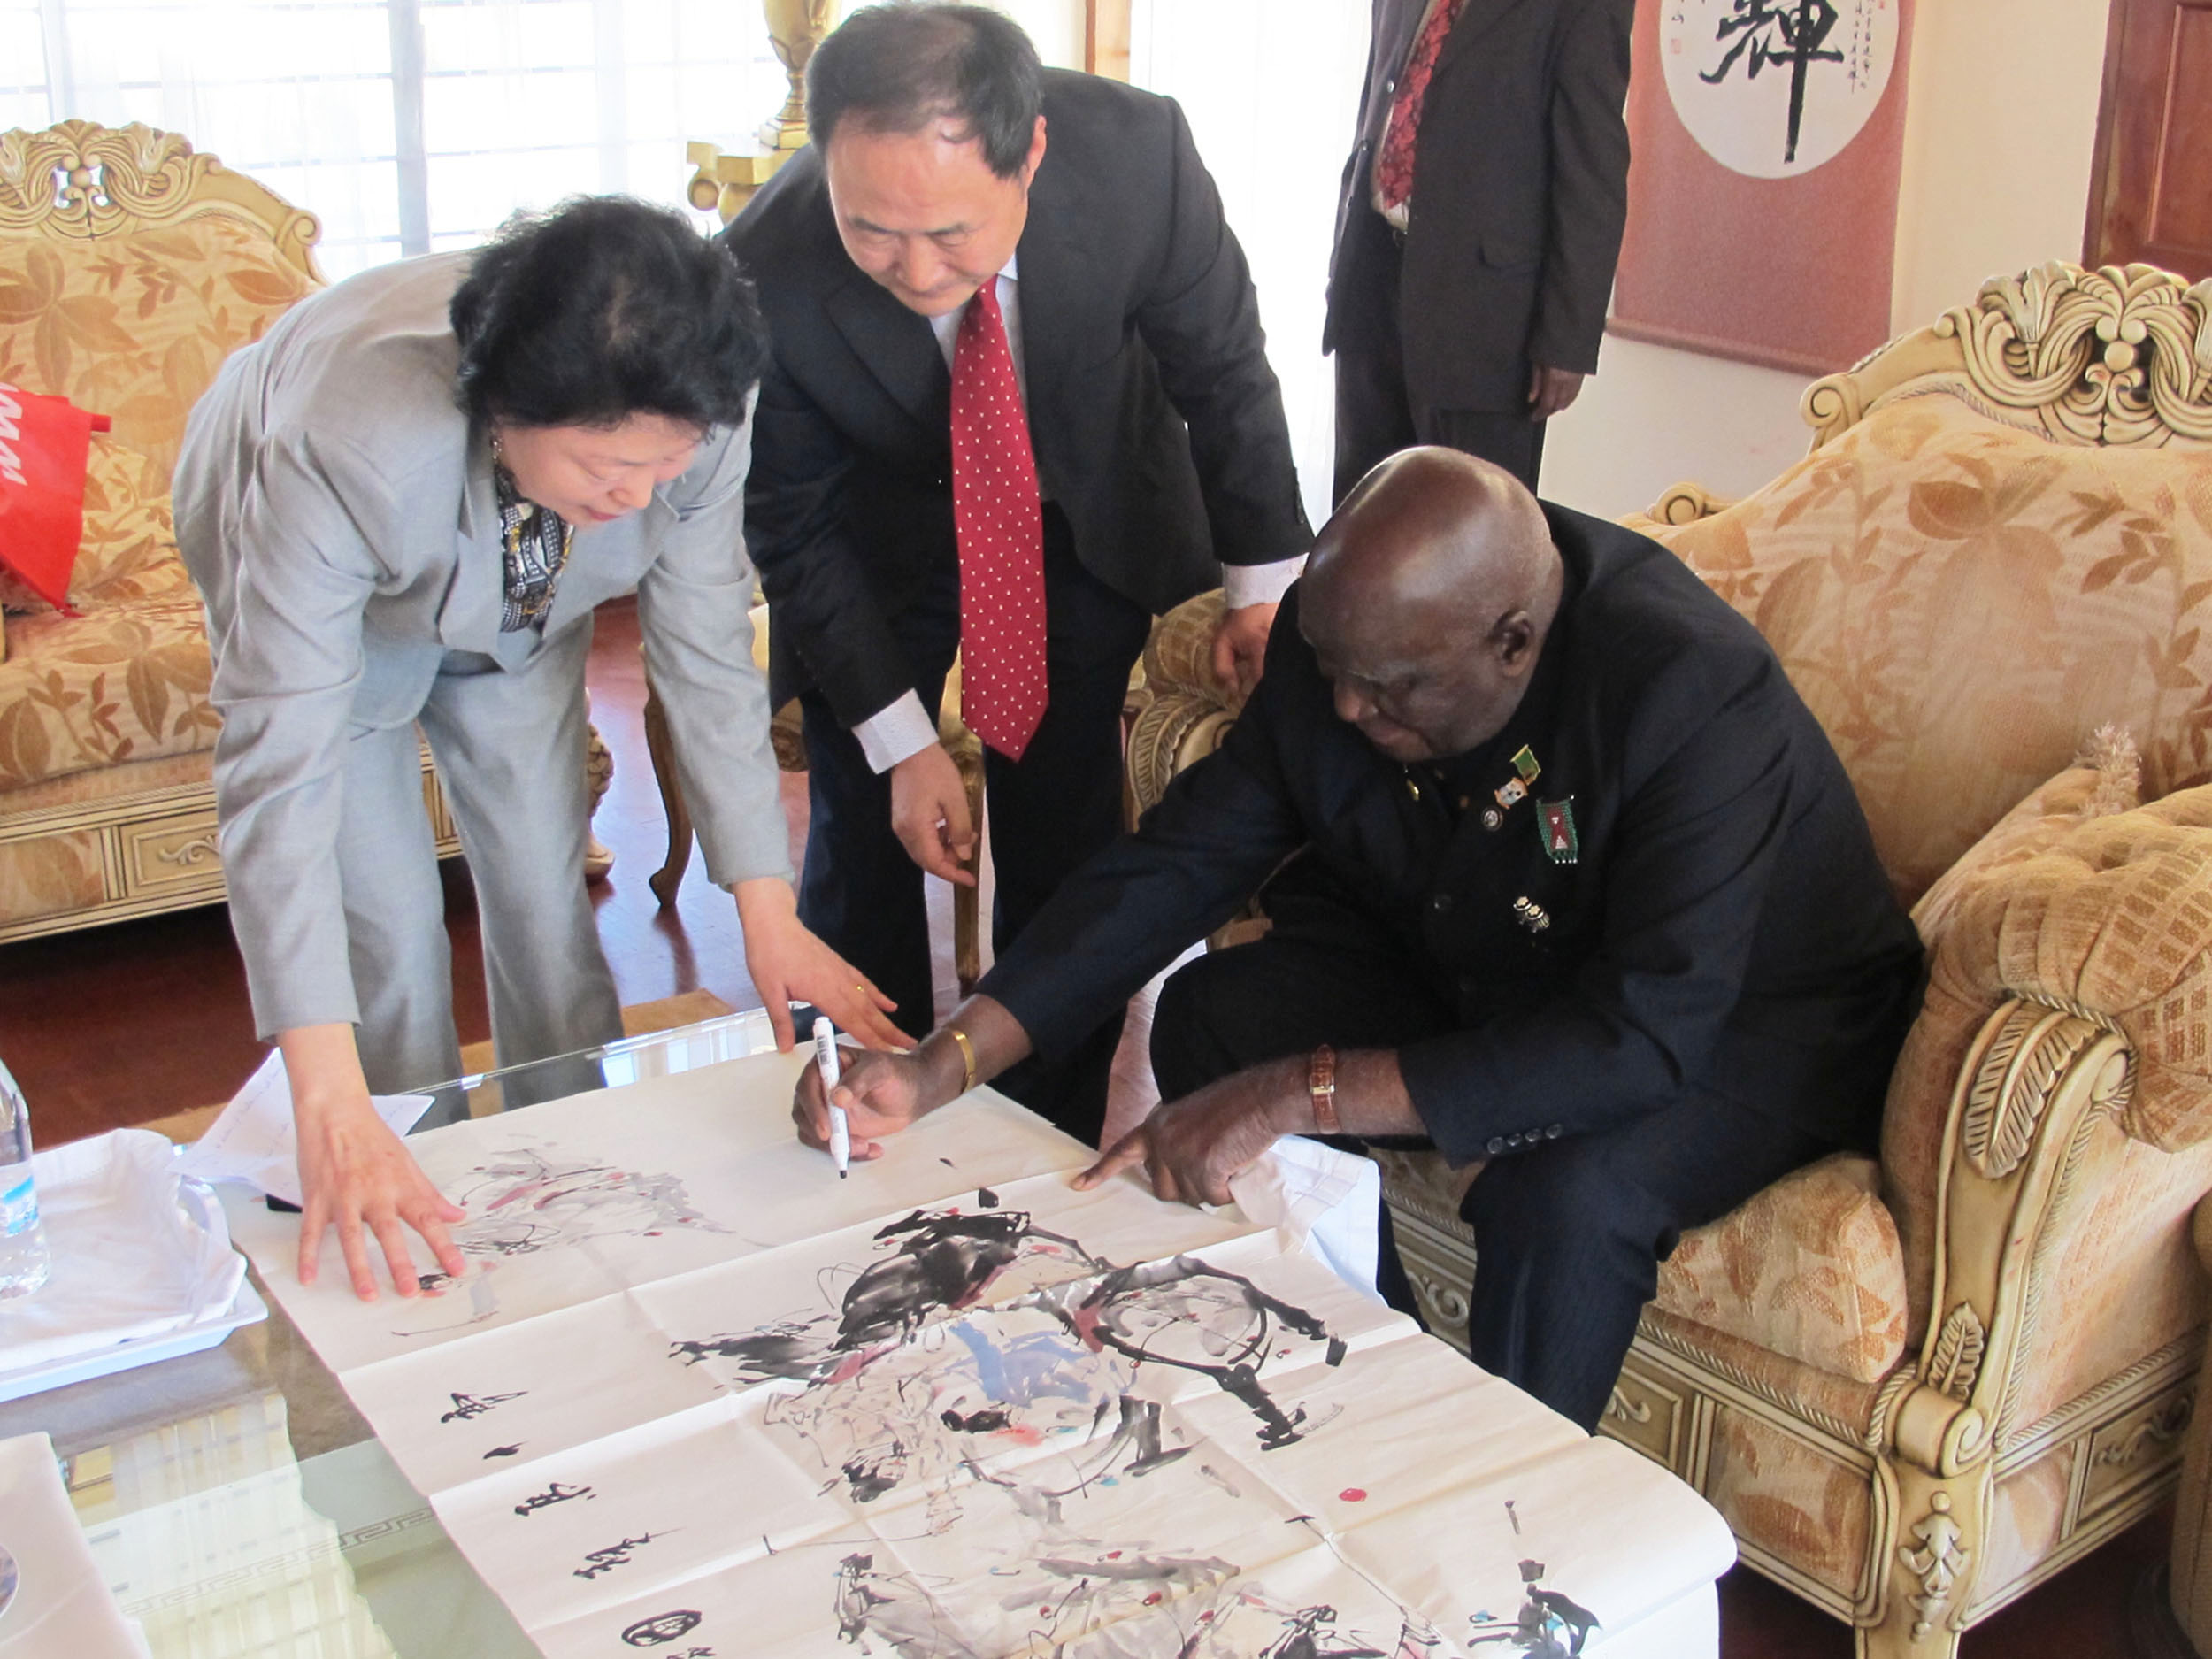 Kaunda, the former president of Zambia, signing his name on a painting